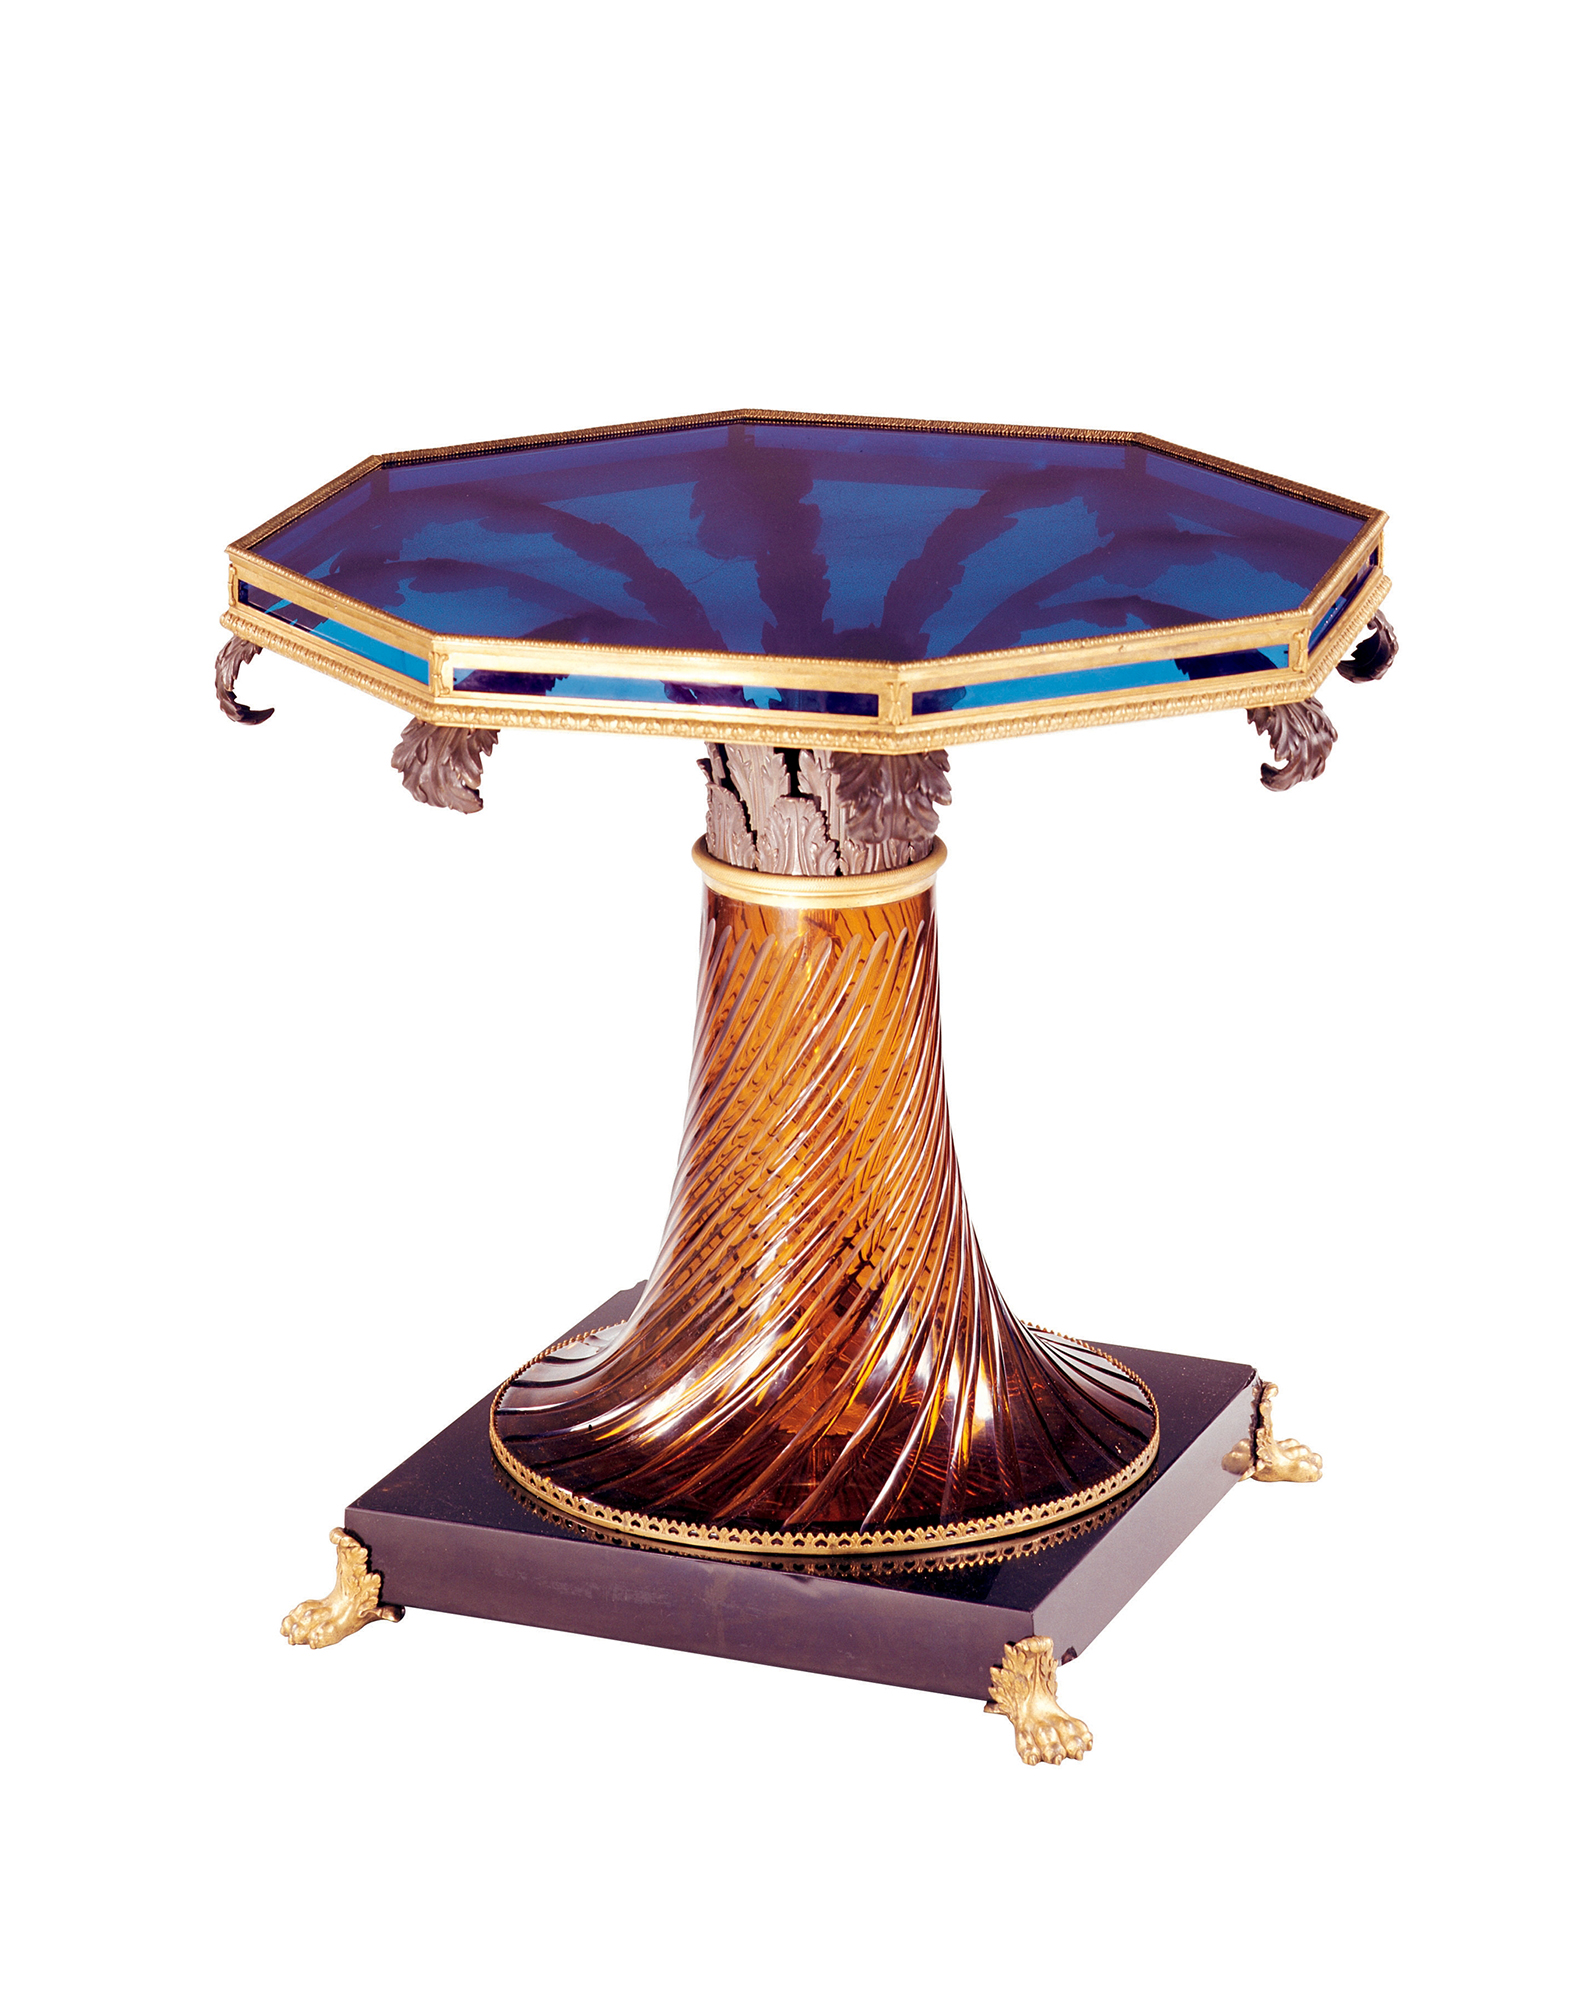 The table top is a single slab of blue glass cut in the shape of an octagon, resting on a single piece of amber-colored glass decorated with spiral cuttings.